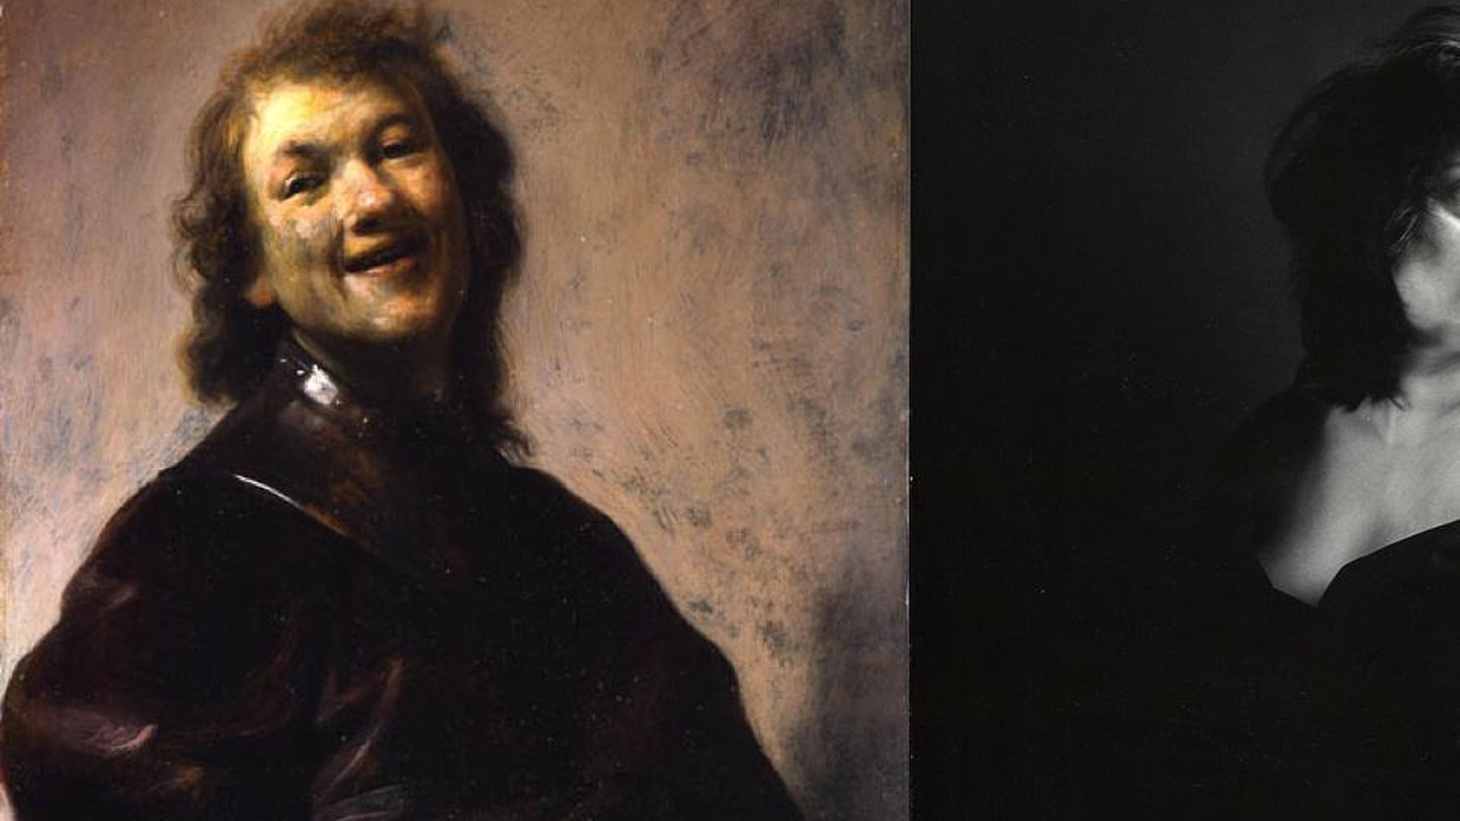 Edward Goldman discusses the portraits of powerful Rembrandt and Richard Avedon.